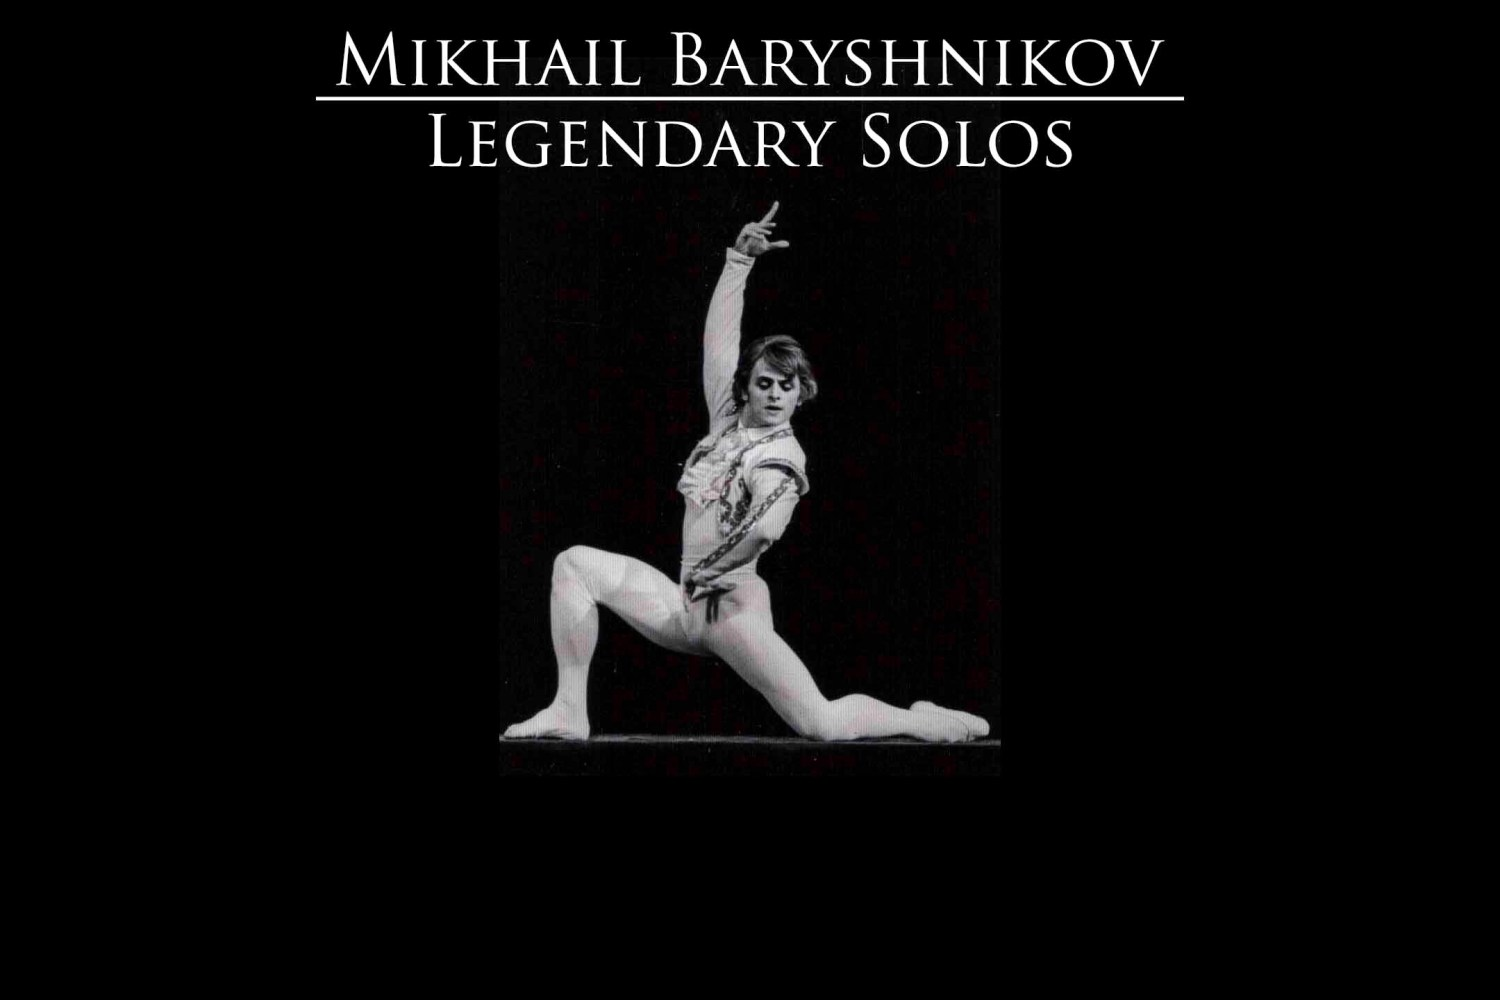 Mikhail Baryshnikov legendary solos YouTube video